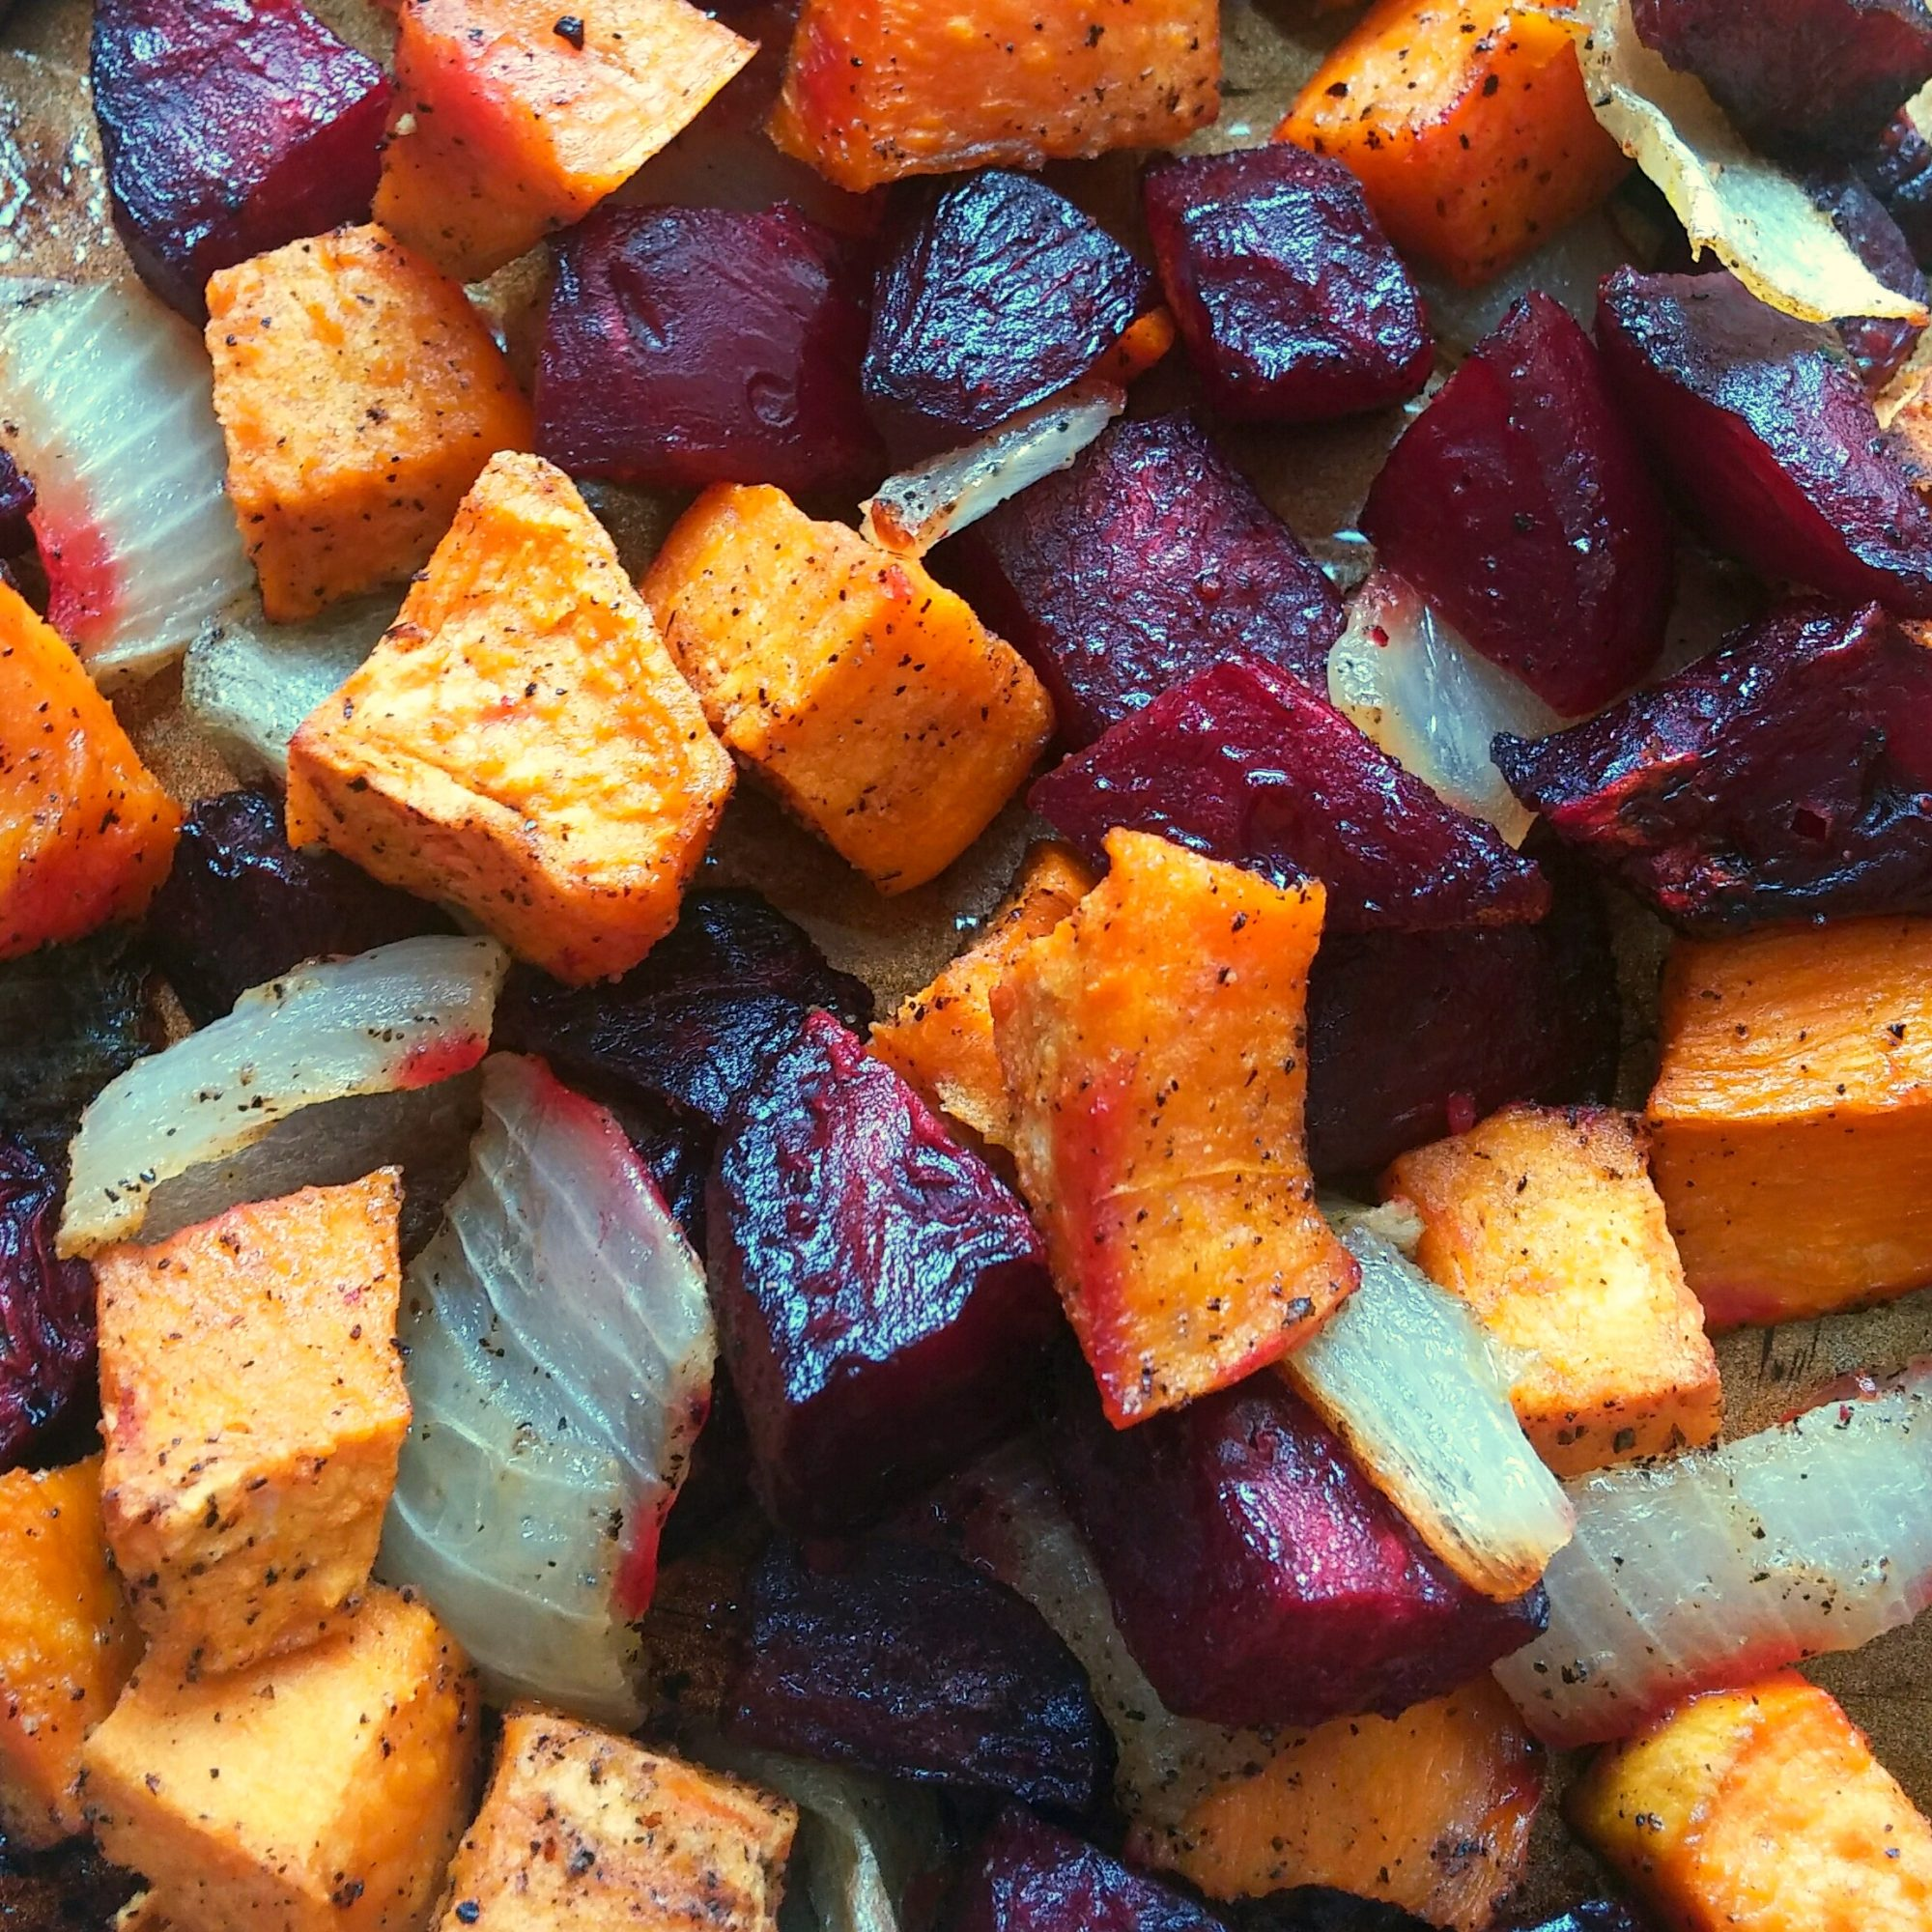 Roasted Beets 'n' Sweets on a sheet pan